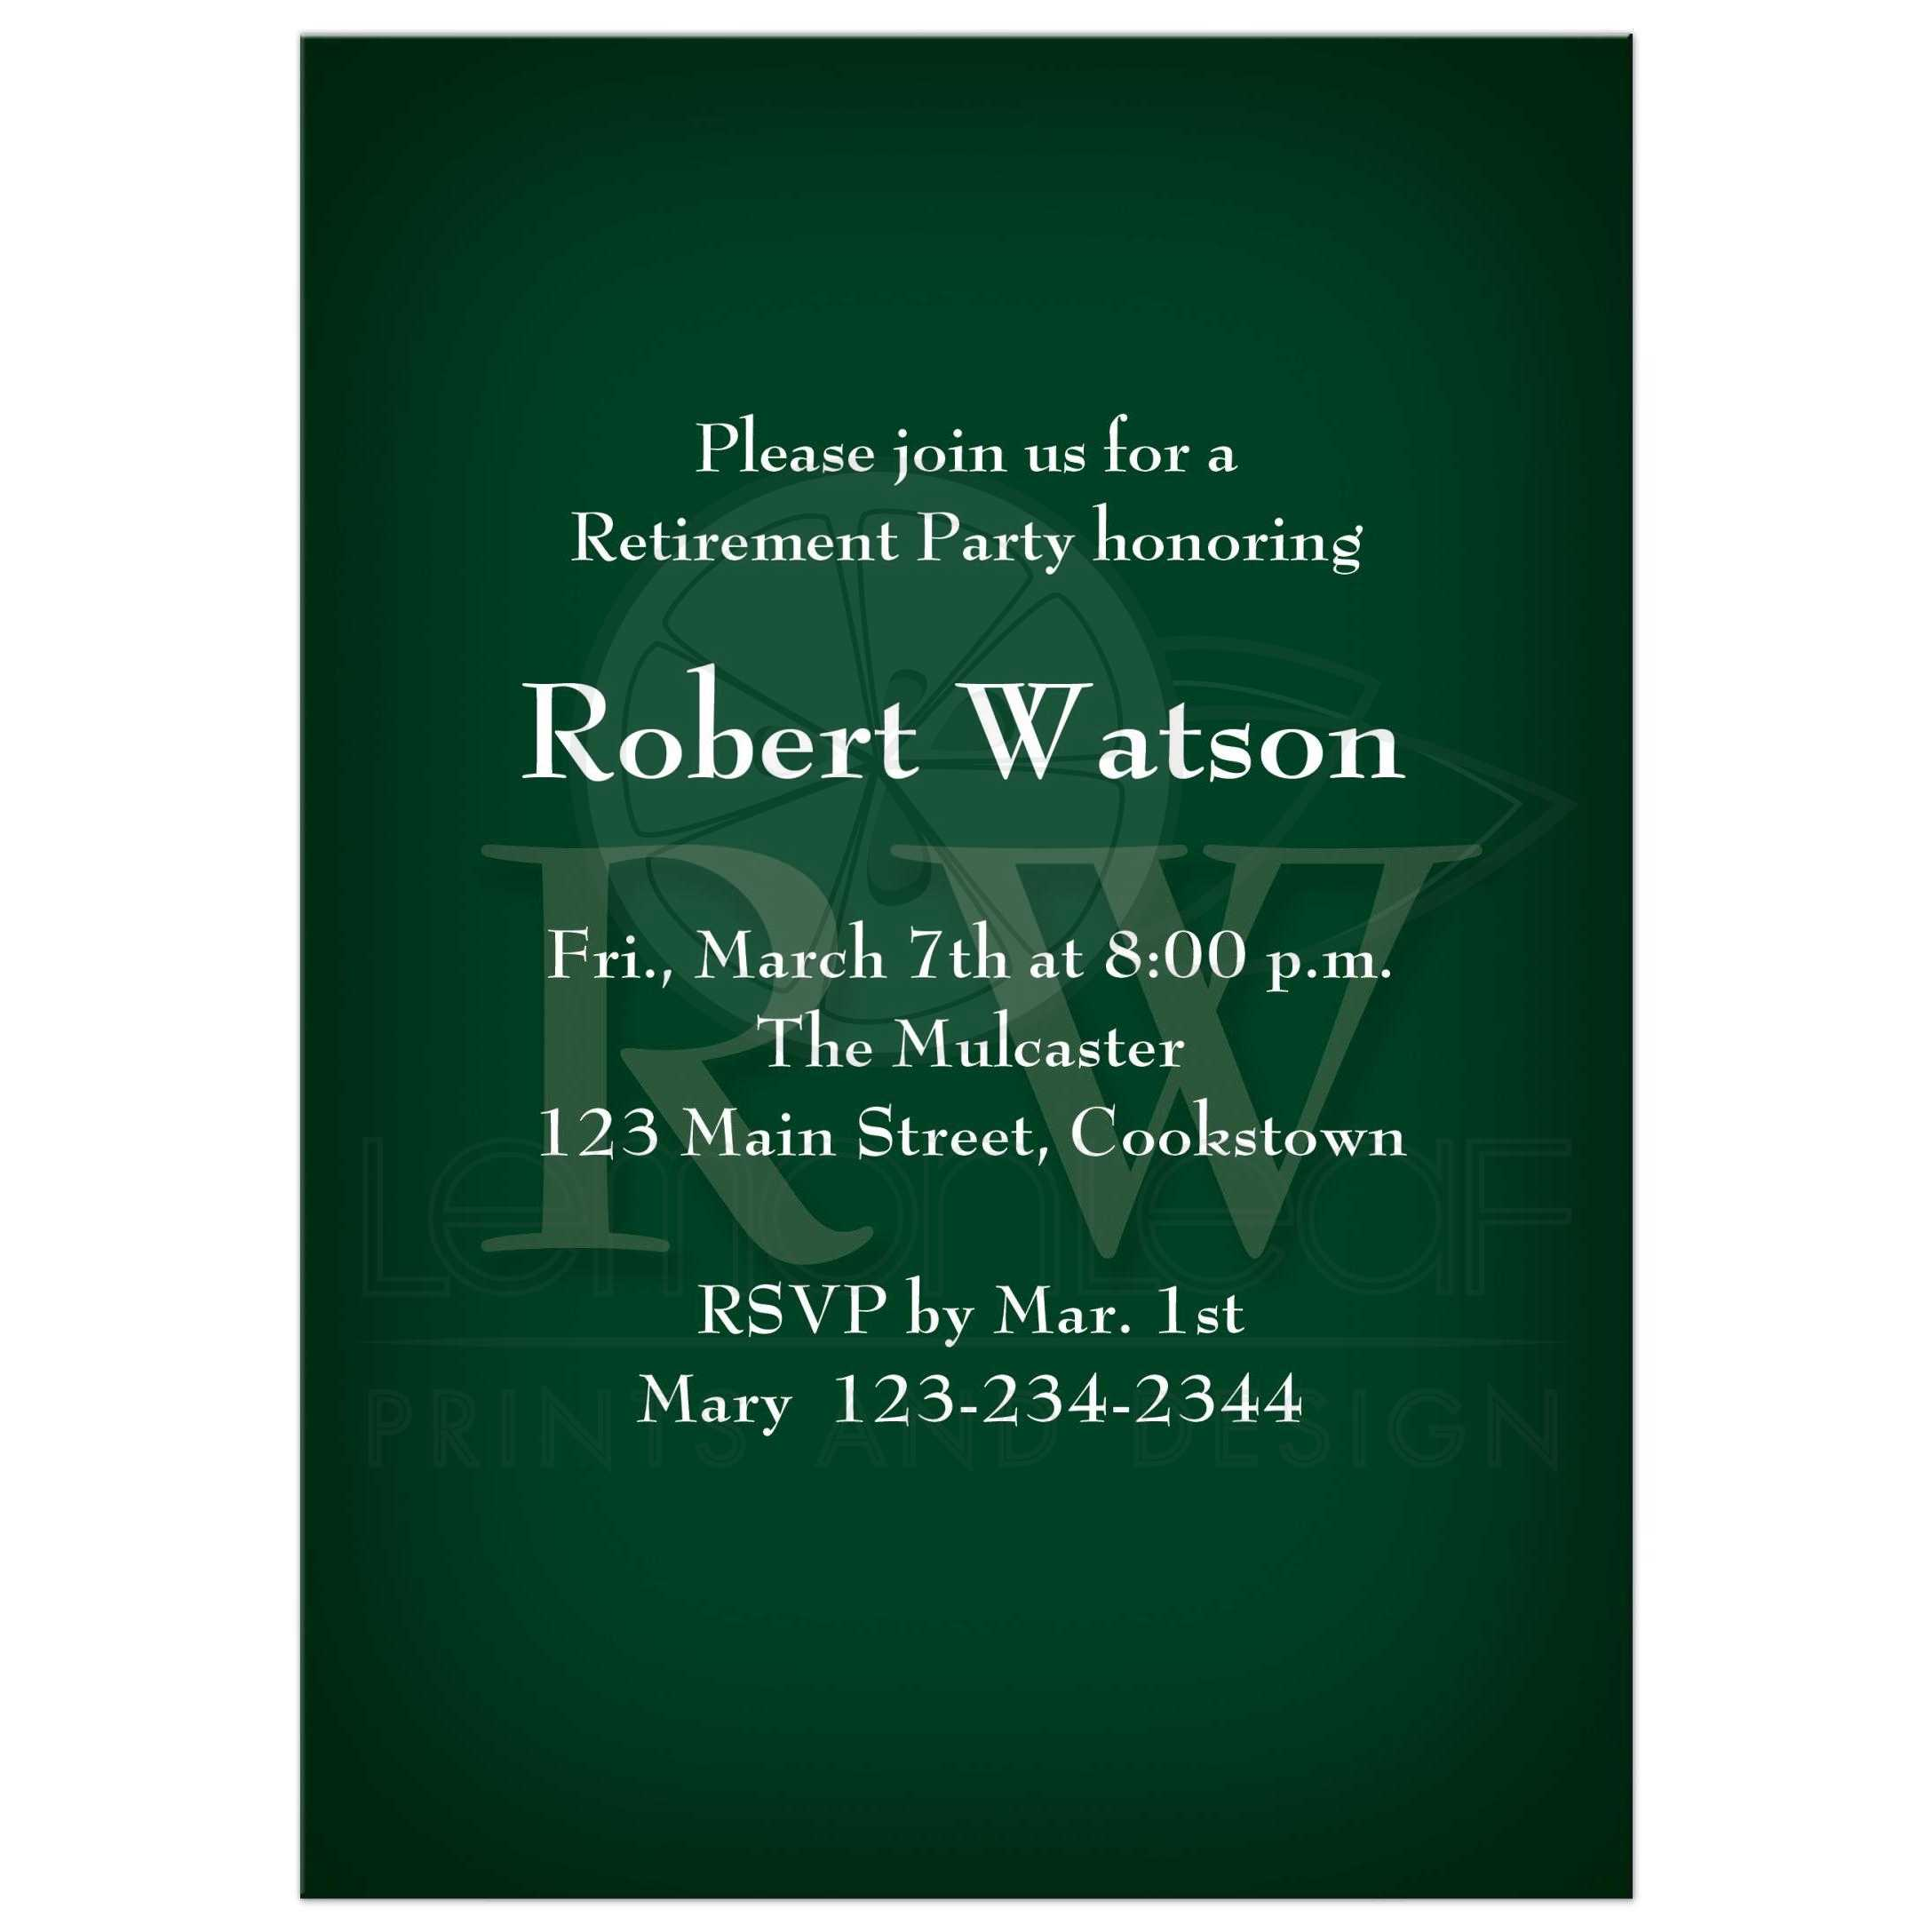 Retirement Party Invitation - Classic Forest Green